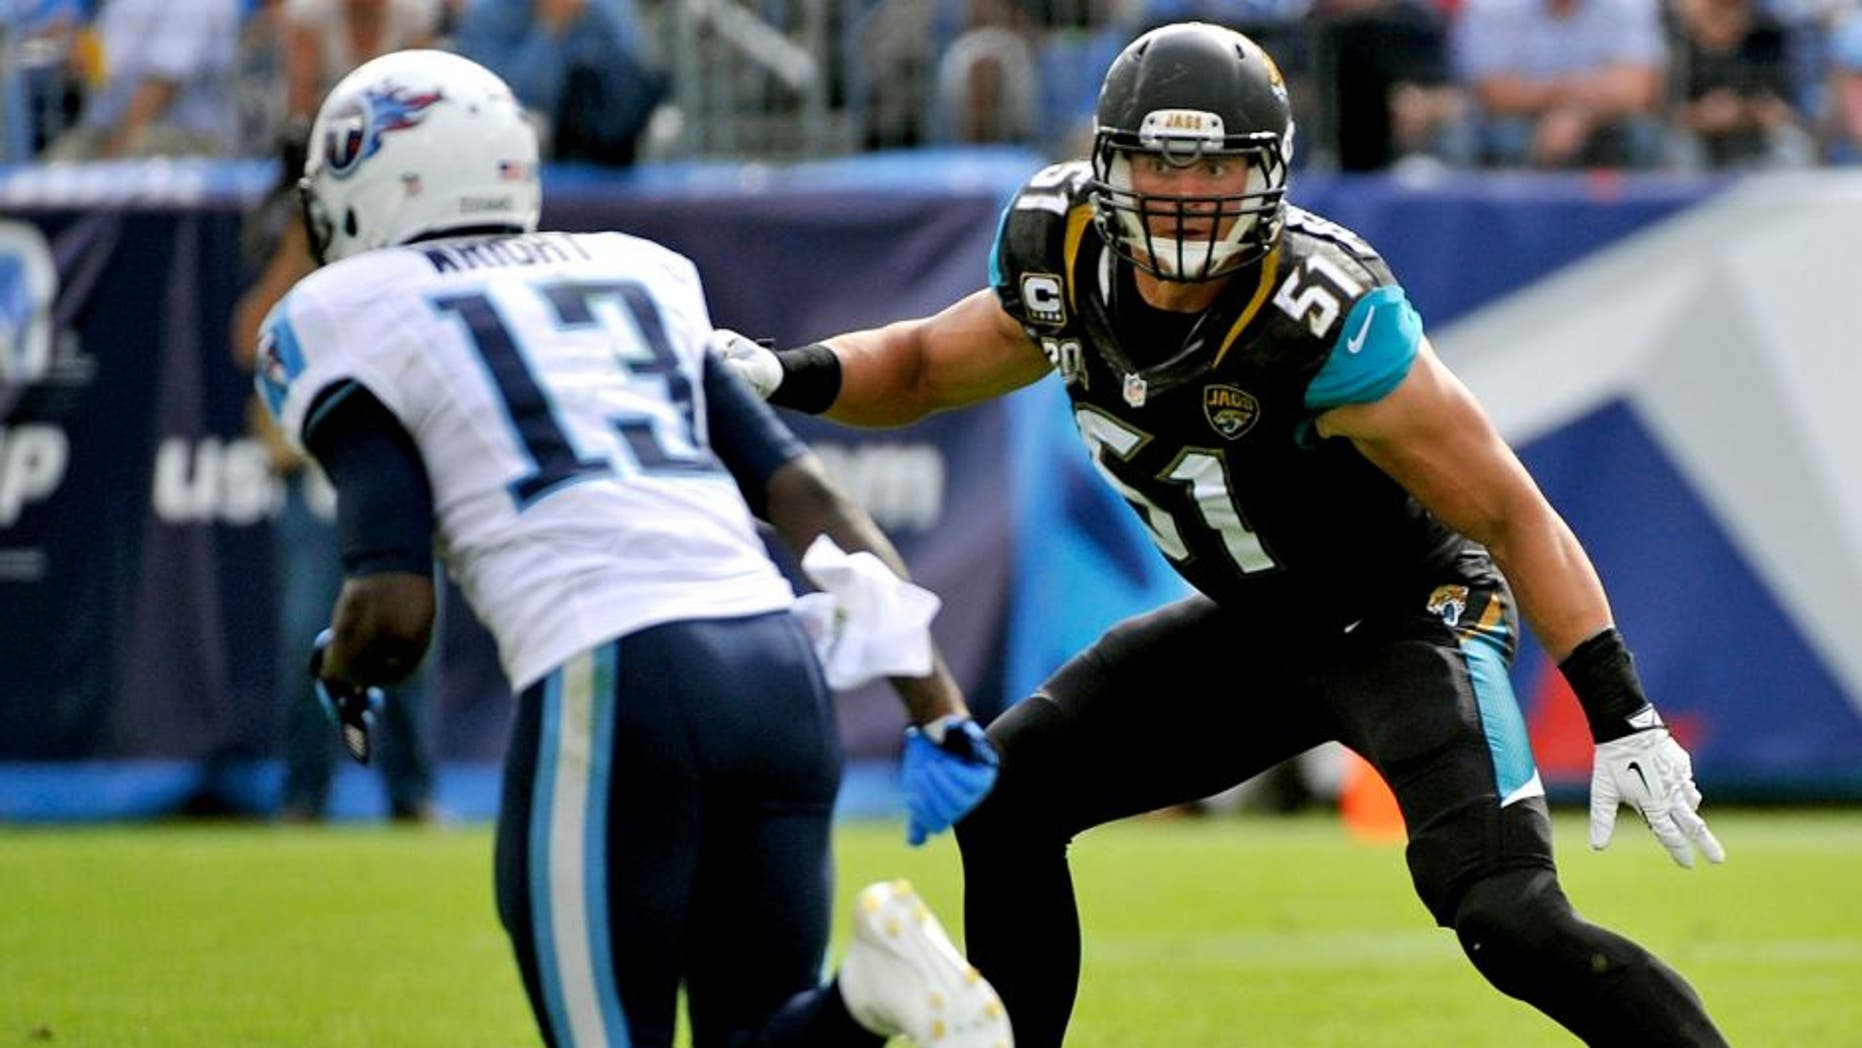 NASHVILLE, TN - OCTOBER 12: Paul Posluszny #51 of the Jacksonville Jaguars plays against the Tennessee Titans at LP Field on October 12, 2014 in Nashville, Tennessee. (Photo by Frederick Breedon/Getty Images)